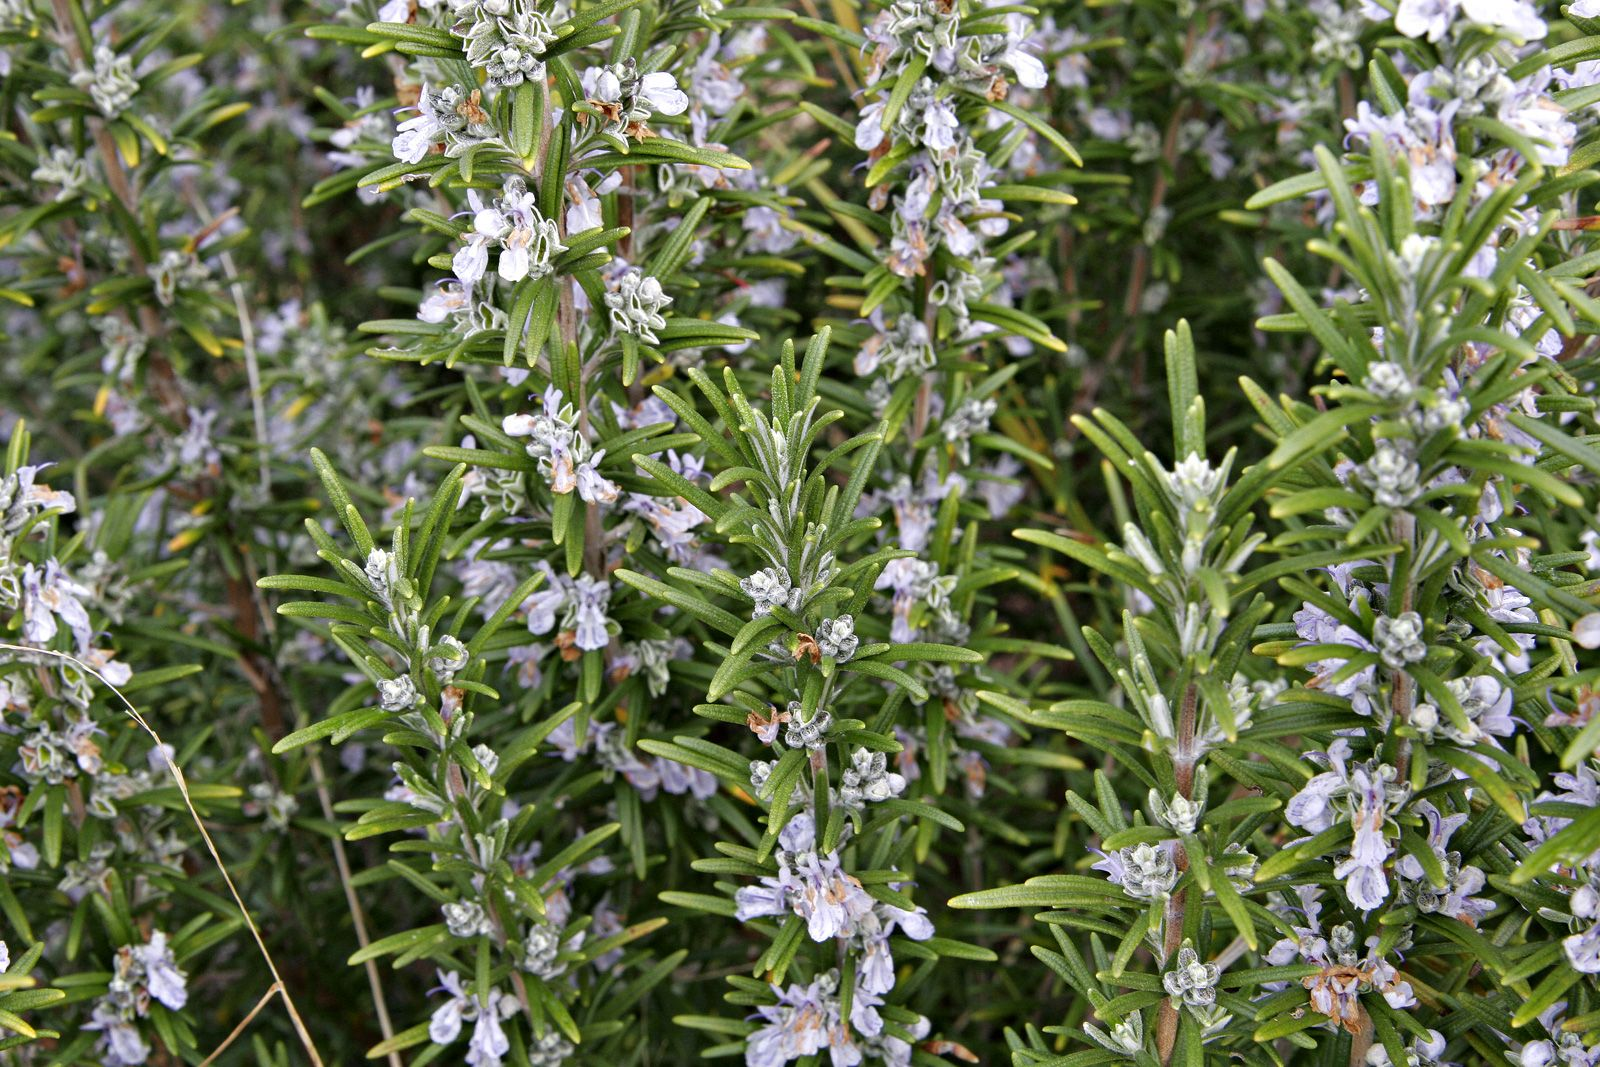 Rosemary Growing Rosemary Rosemary Plant Edible Plants